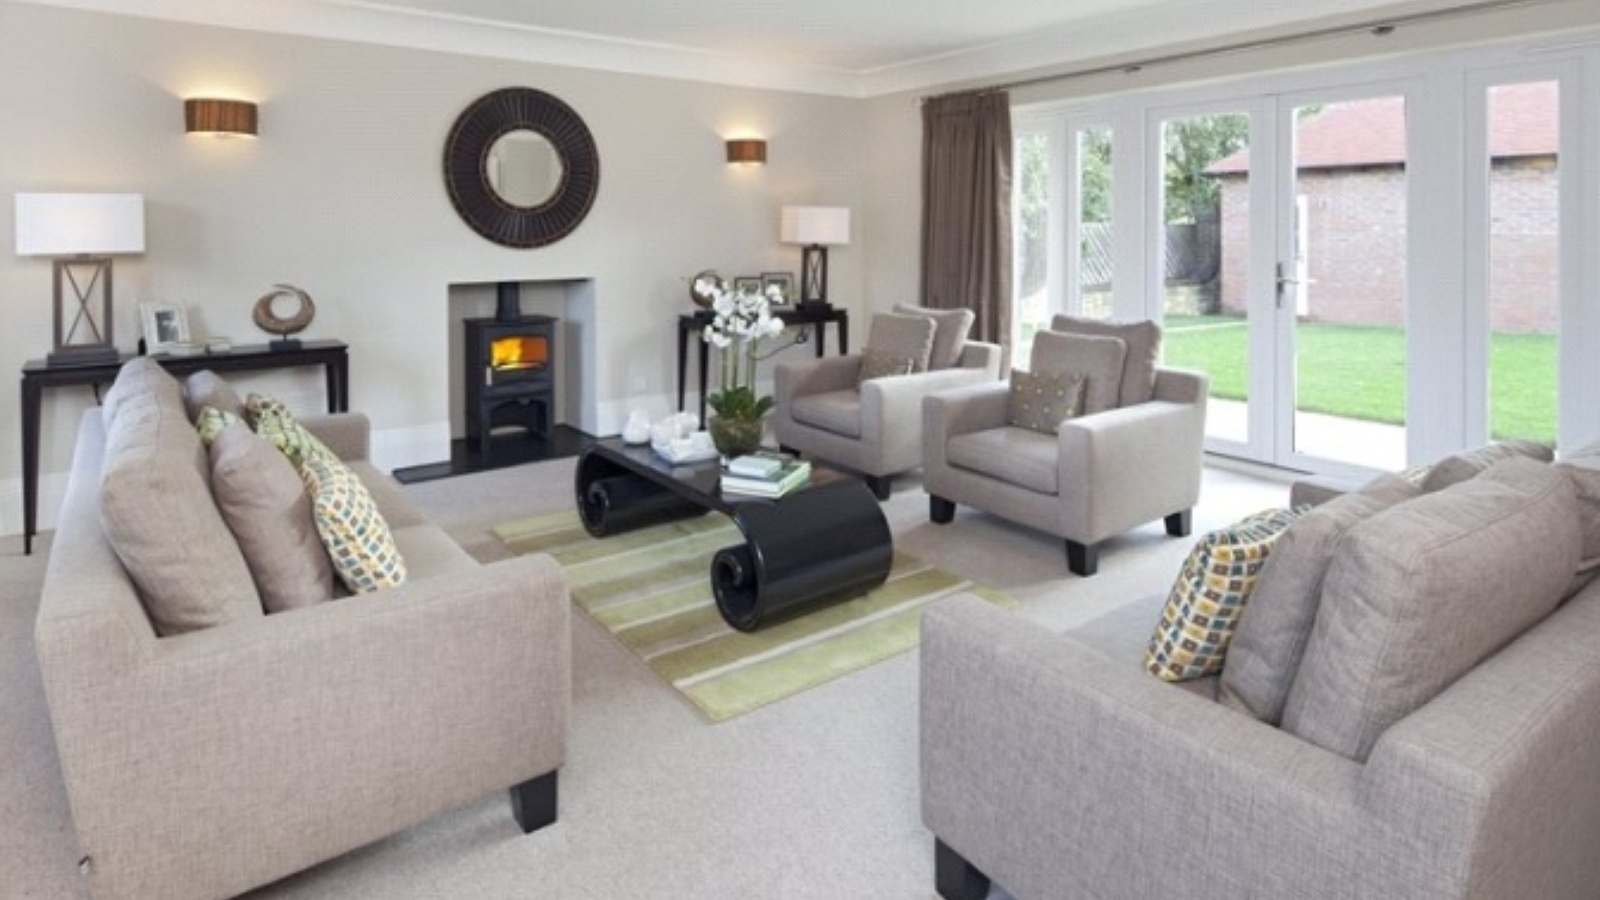 Showhome in Botley, Oxfordshire.